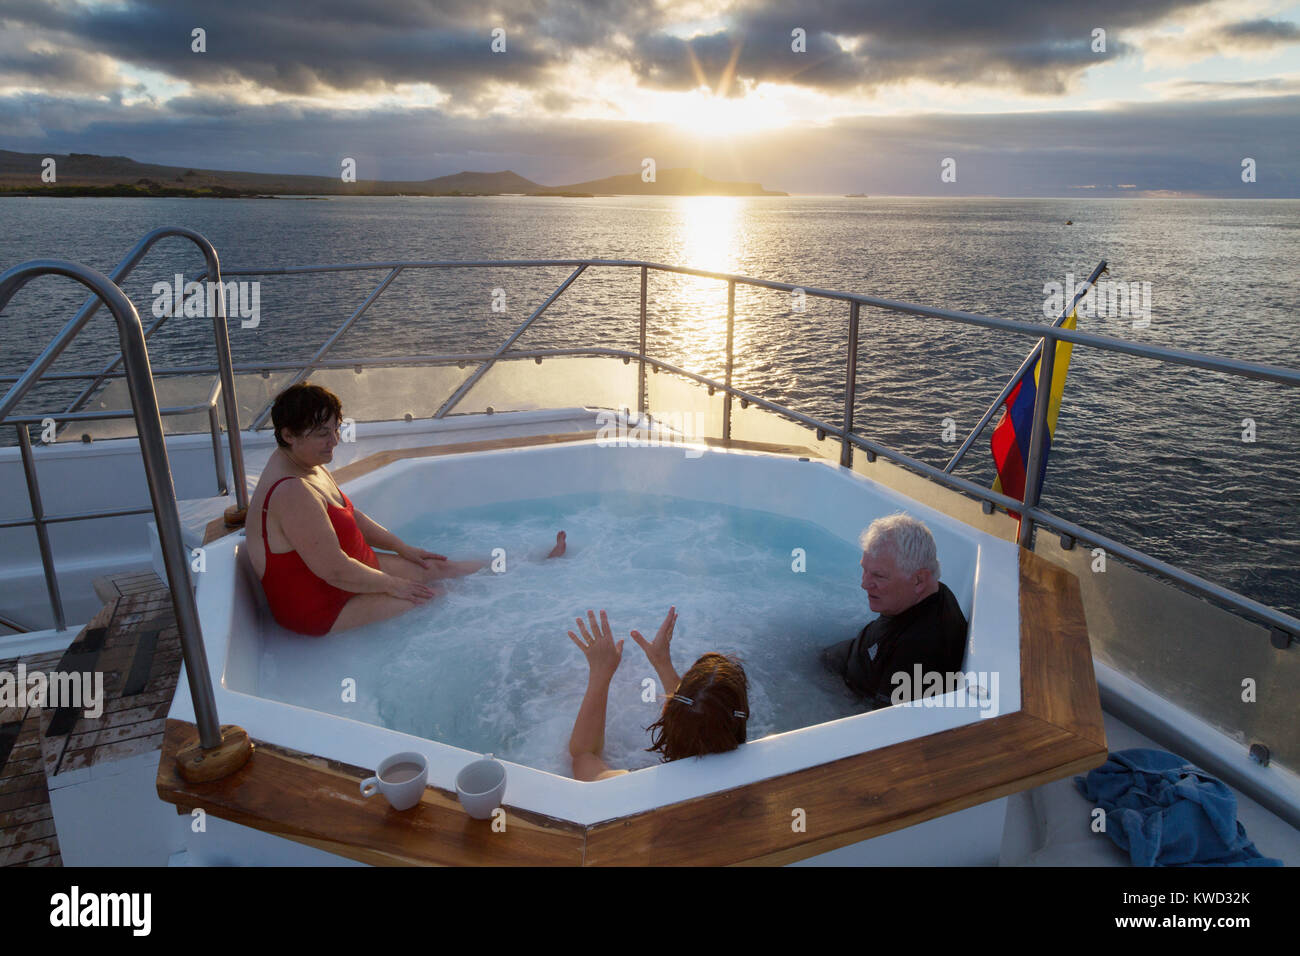 Galapagos travel - tourists in a jacuzzi on their cruise ship watching sunset over Floreana Island, Galapagos Islands, - Stock Image